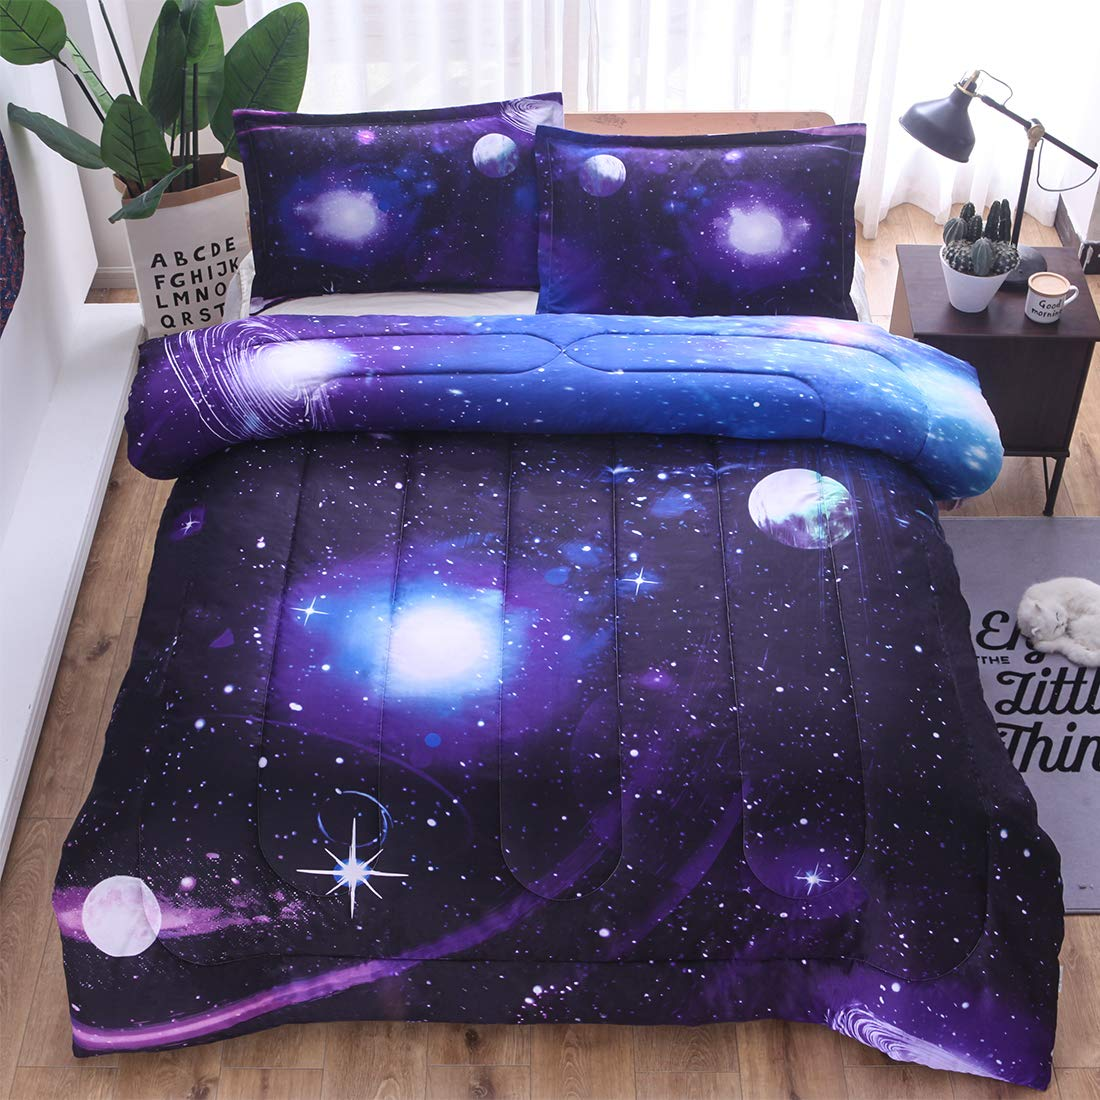 3D Outer Space Themed Bedding 1 Pillow Sham All-Season Reversible Quilted Duvet Includes 1 Comforter JQinHome Twin Galaxies Blue Comforter Sets Blanket for Children Boy Girl Teen Kids